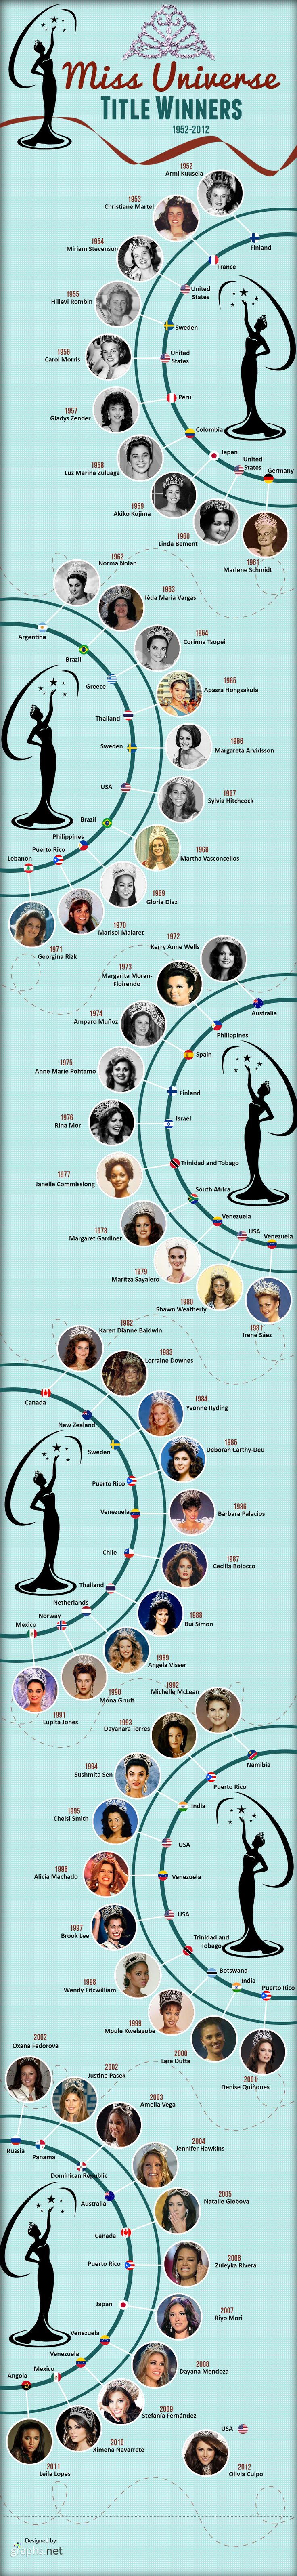 Miss Universe Title Winners 1952 - 2012 (Infographic)